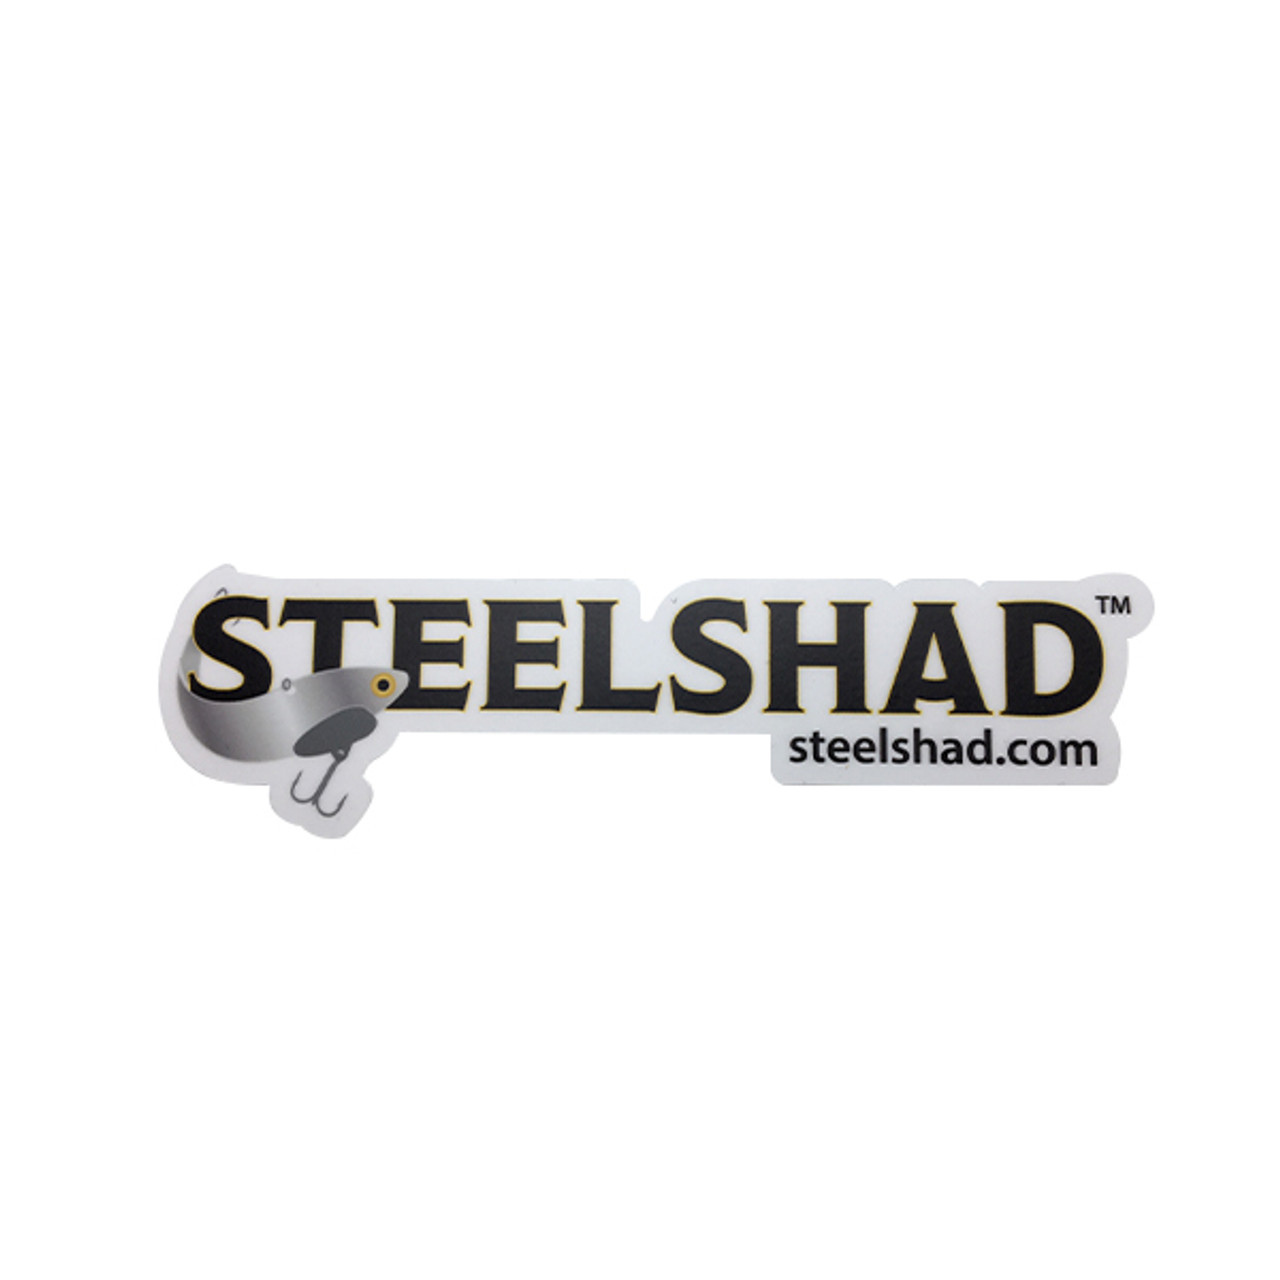 SteelShad Logo Sticker - Small